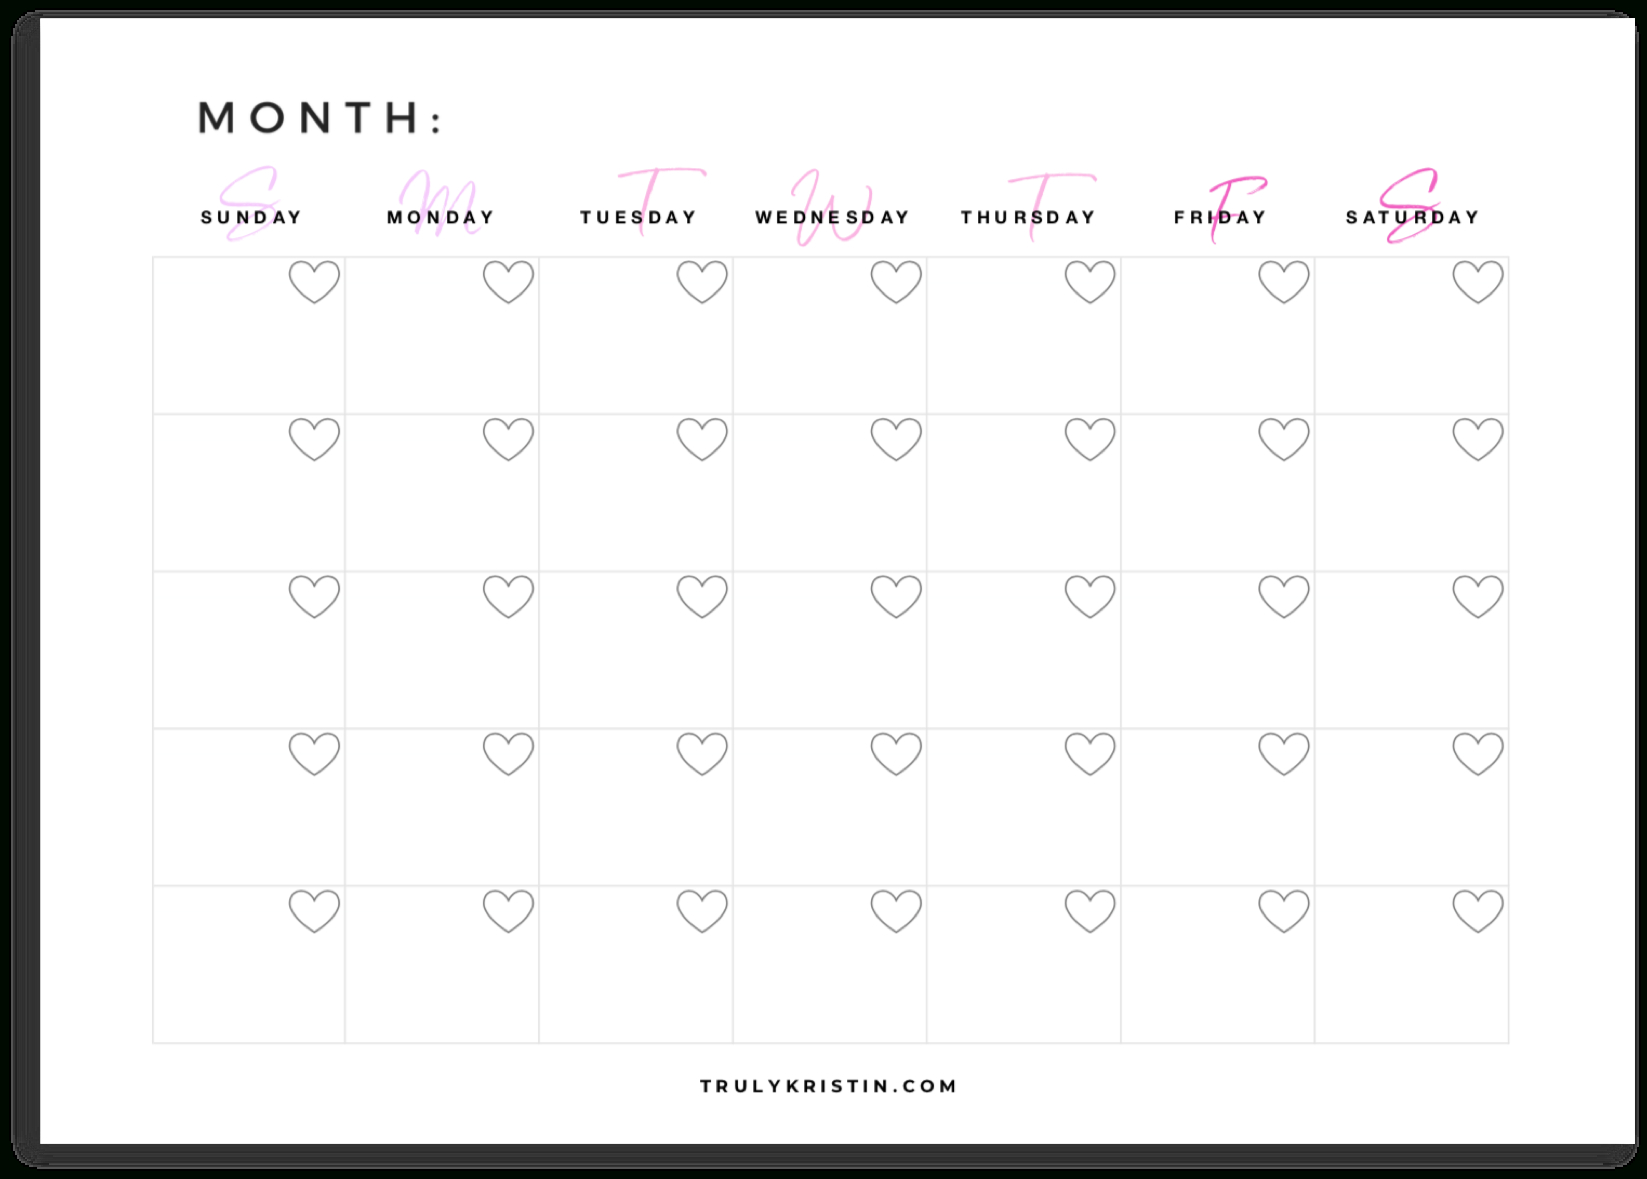 Account Suspended | Monthly Planner Template, Weekly Planner